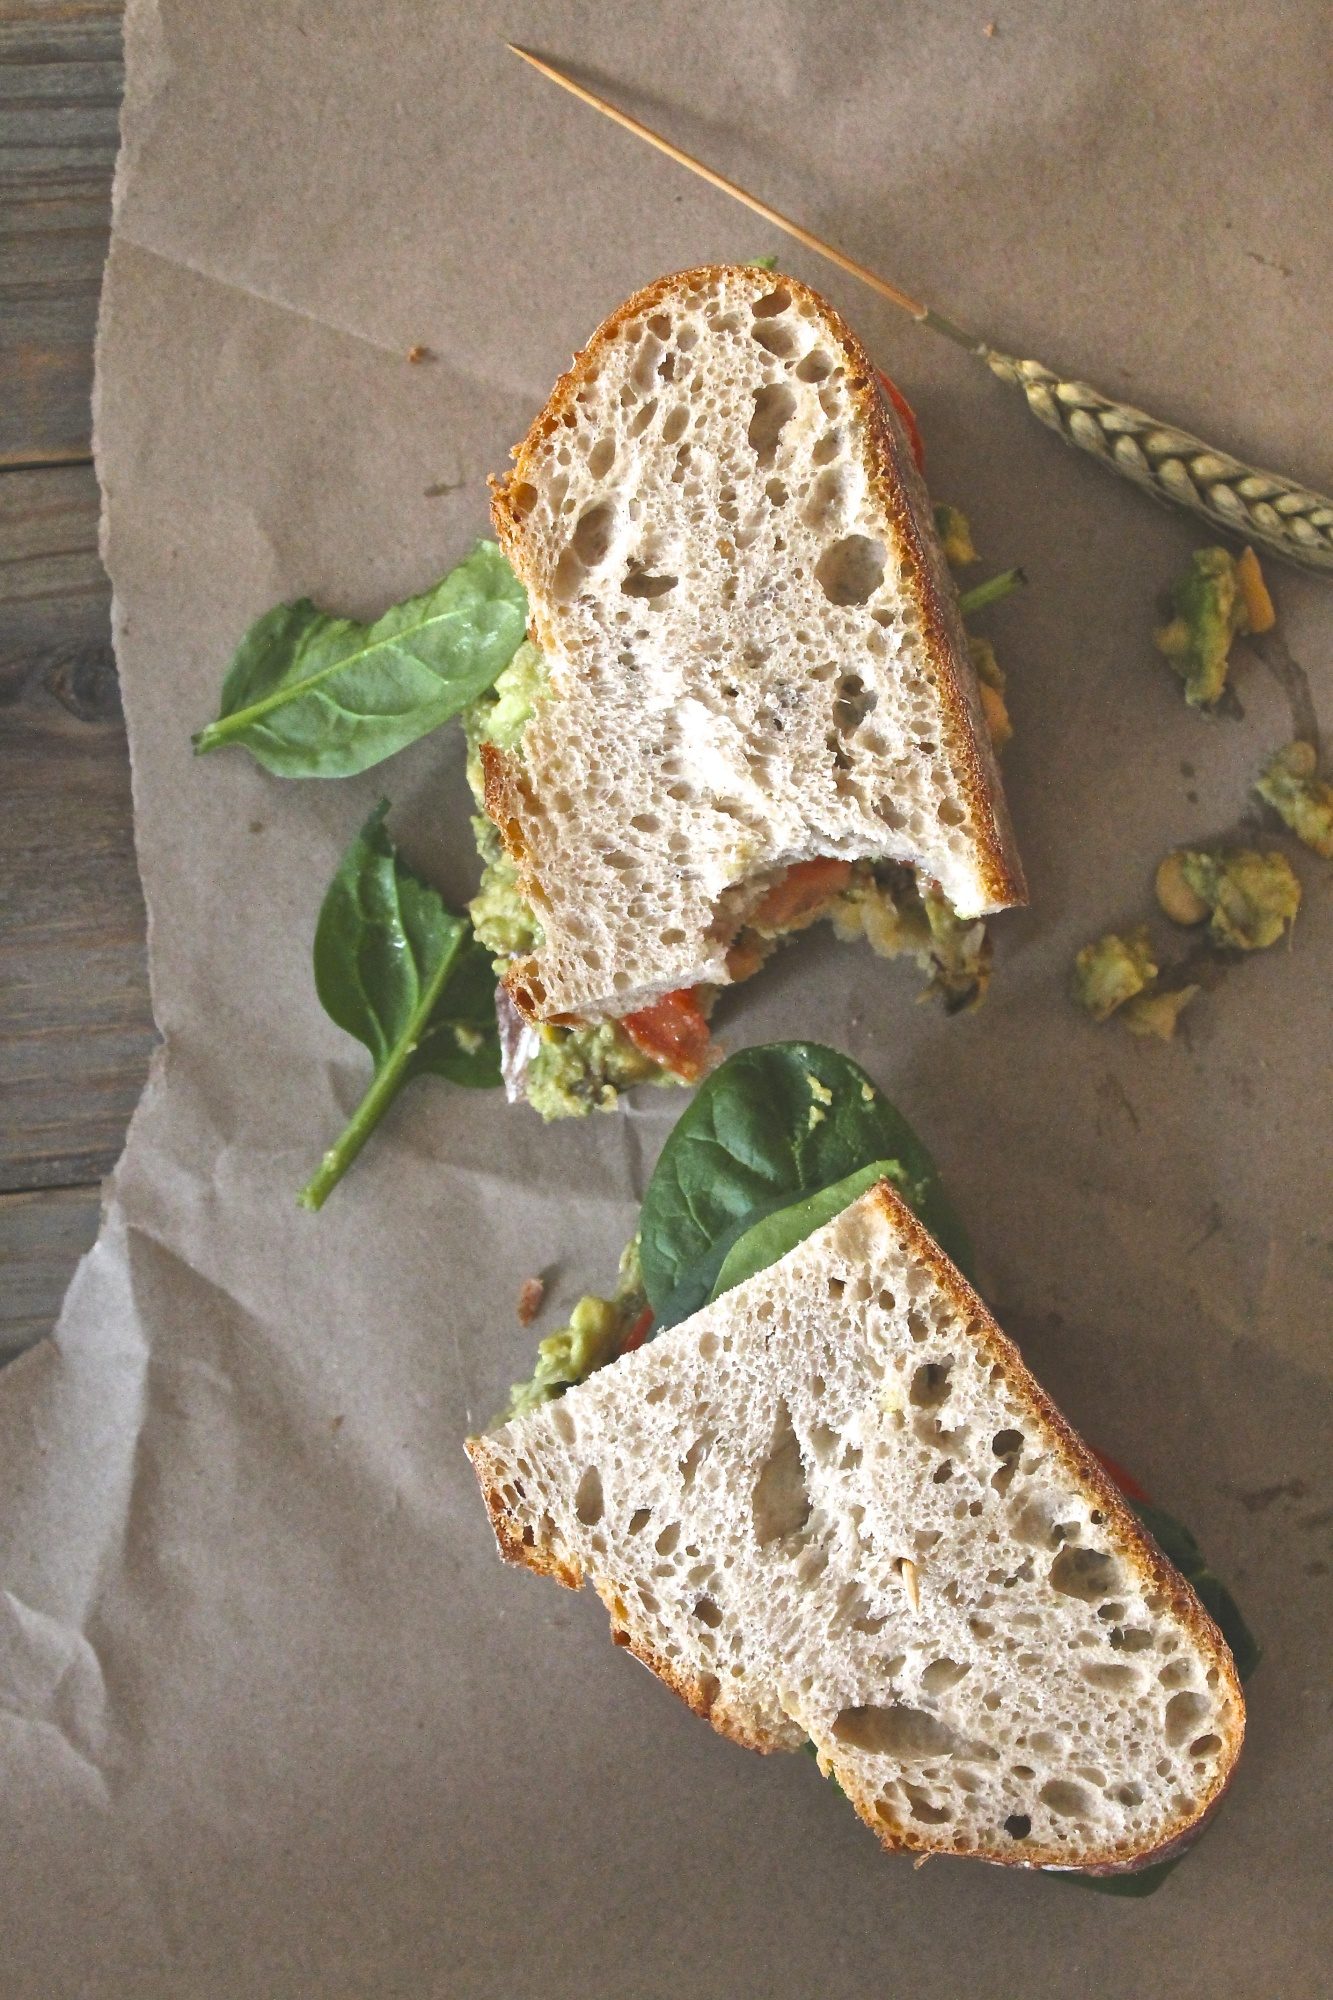 Mashed Avocado & Chickpea Sandwich